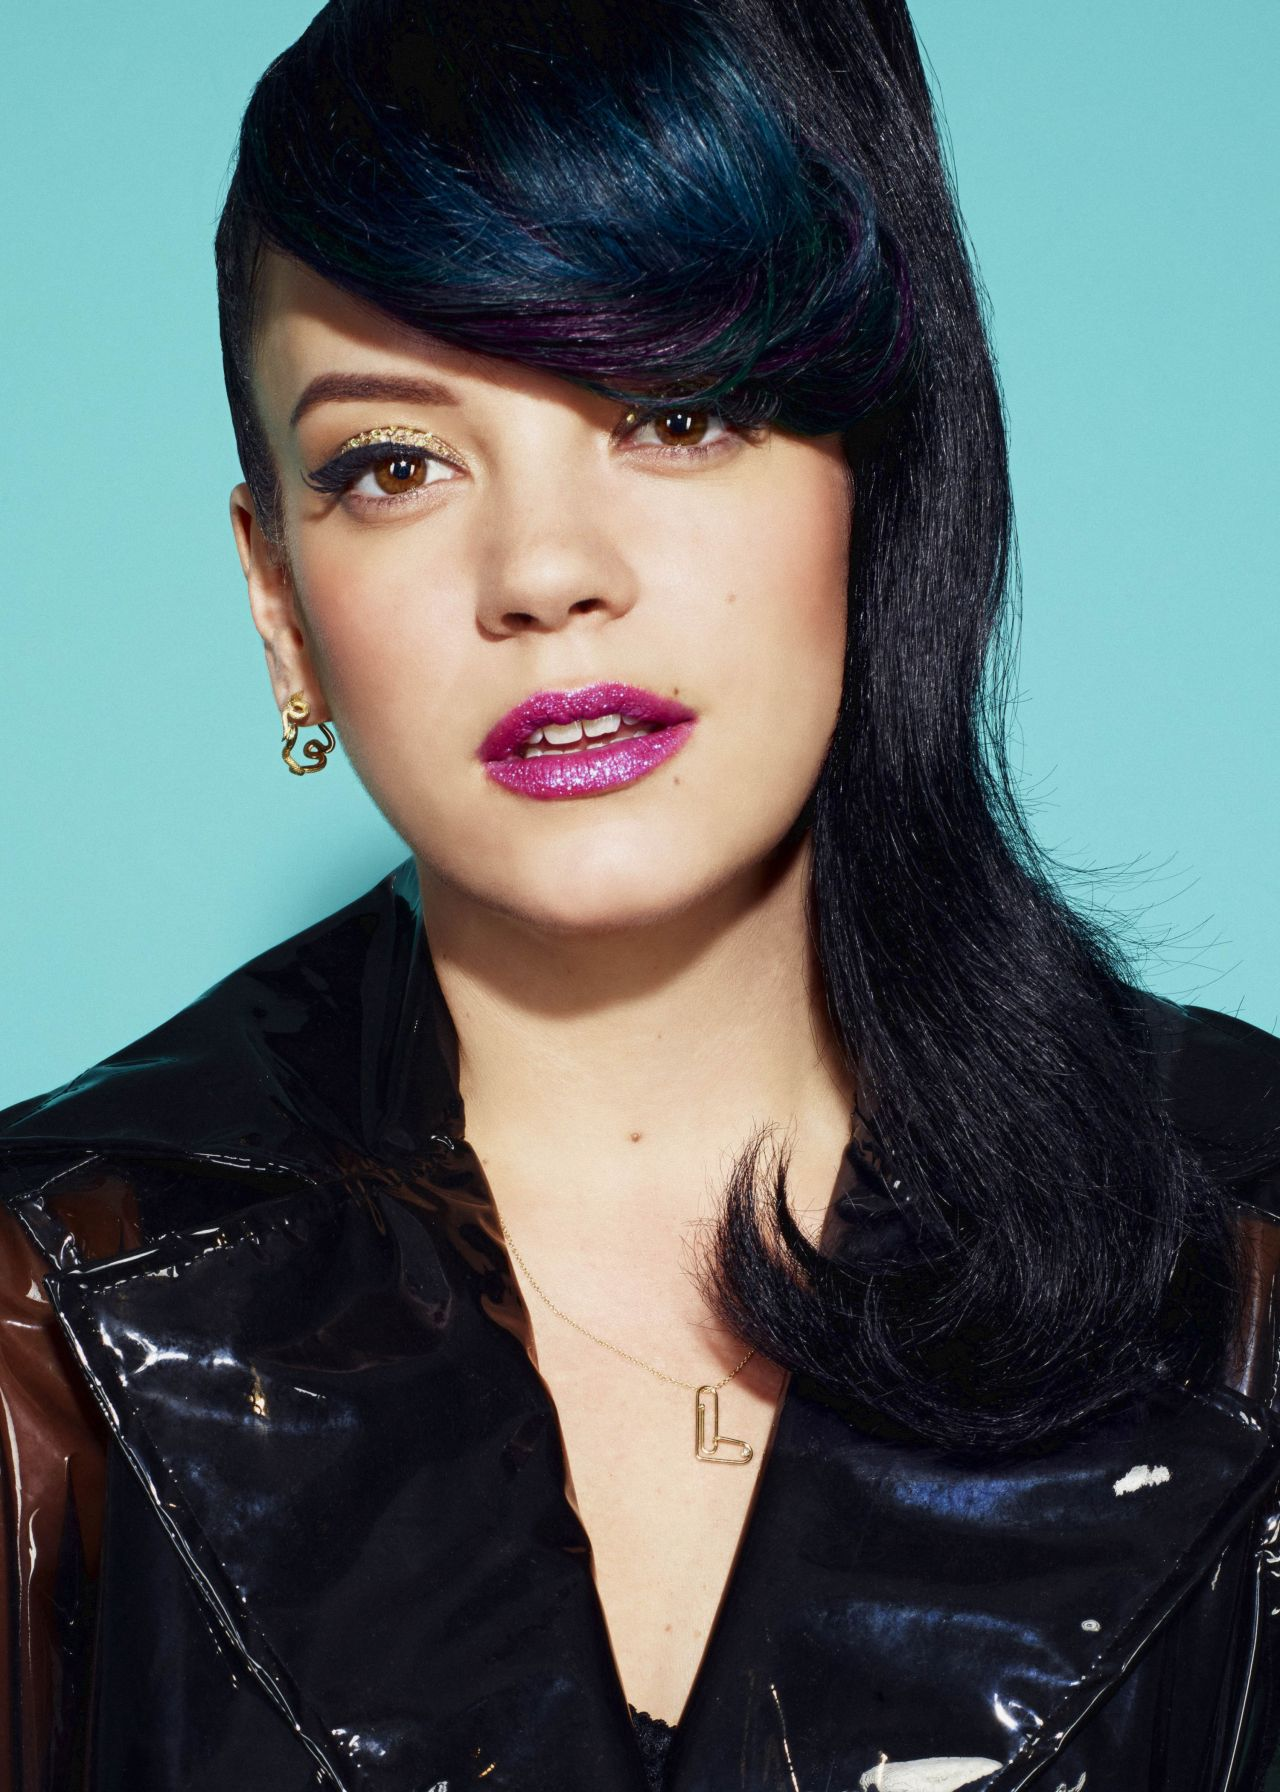 Lily Allen - Nme Photoshoot 2014-6241